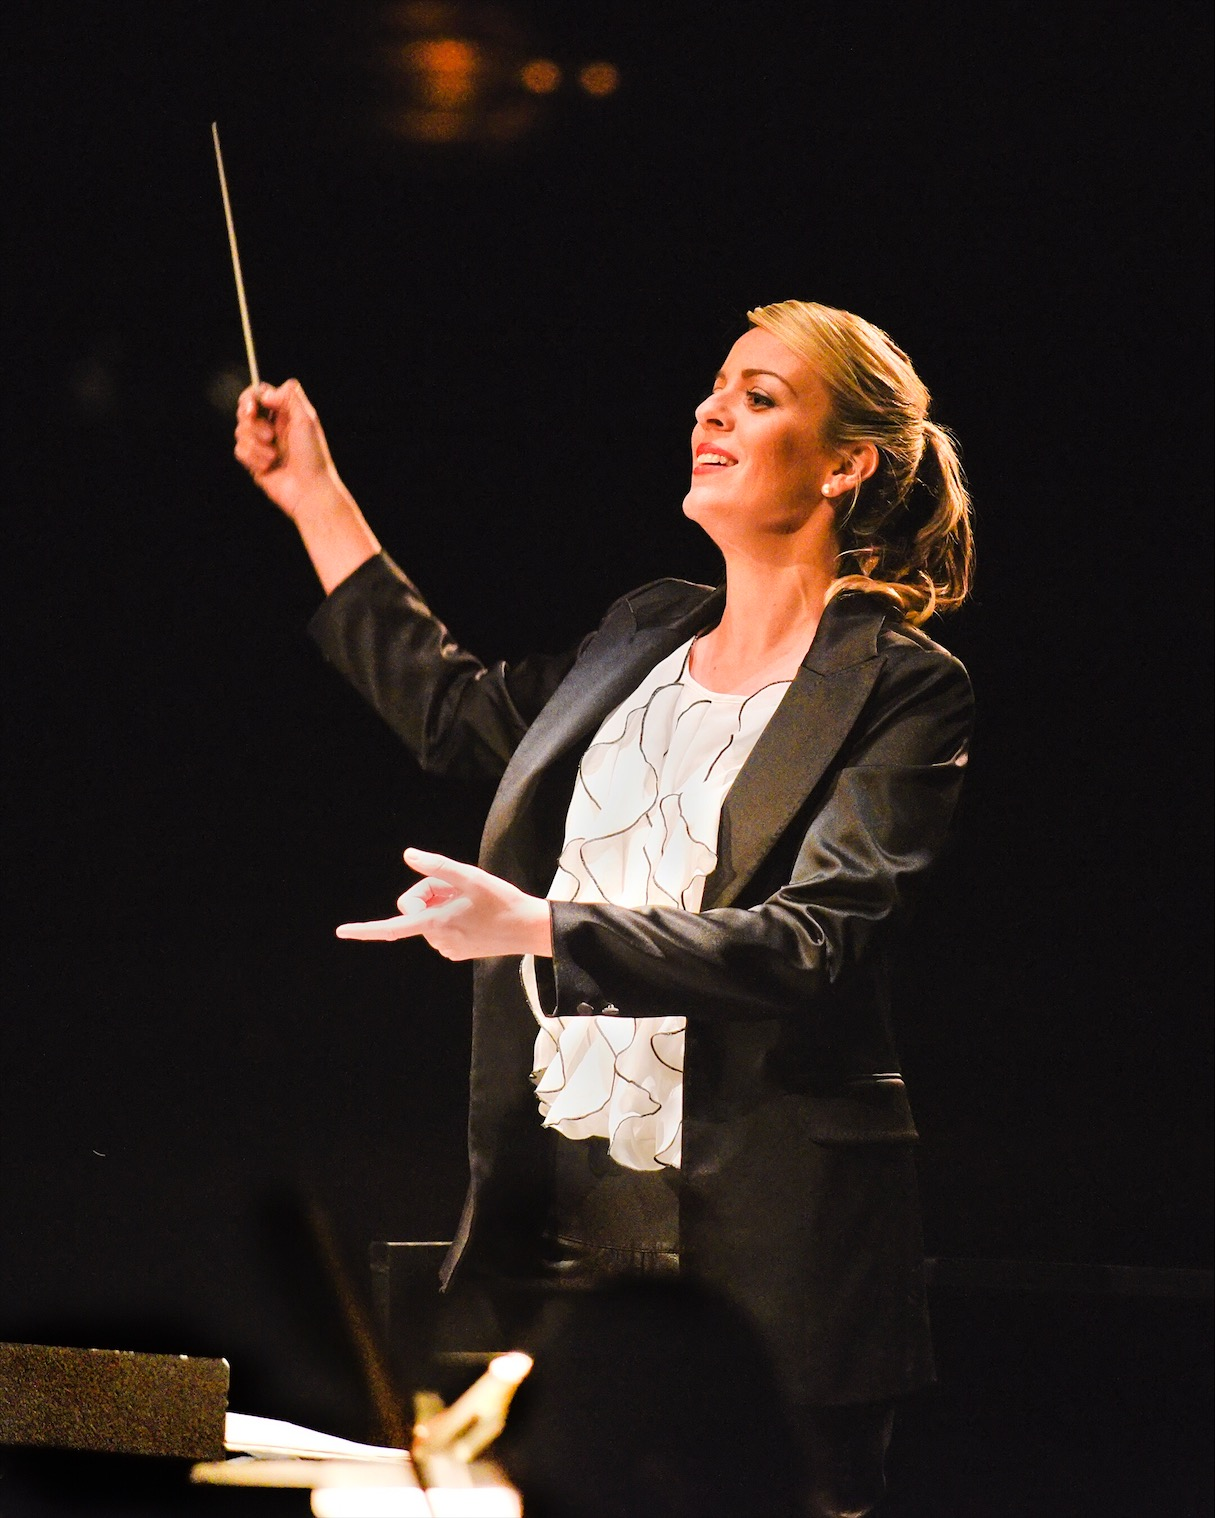 jessica-gethin-conducting.jpg